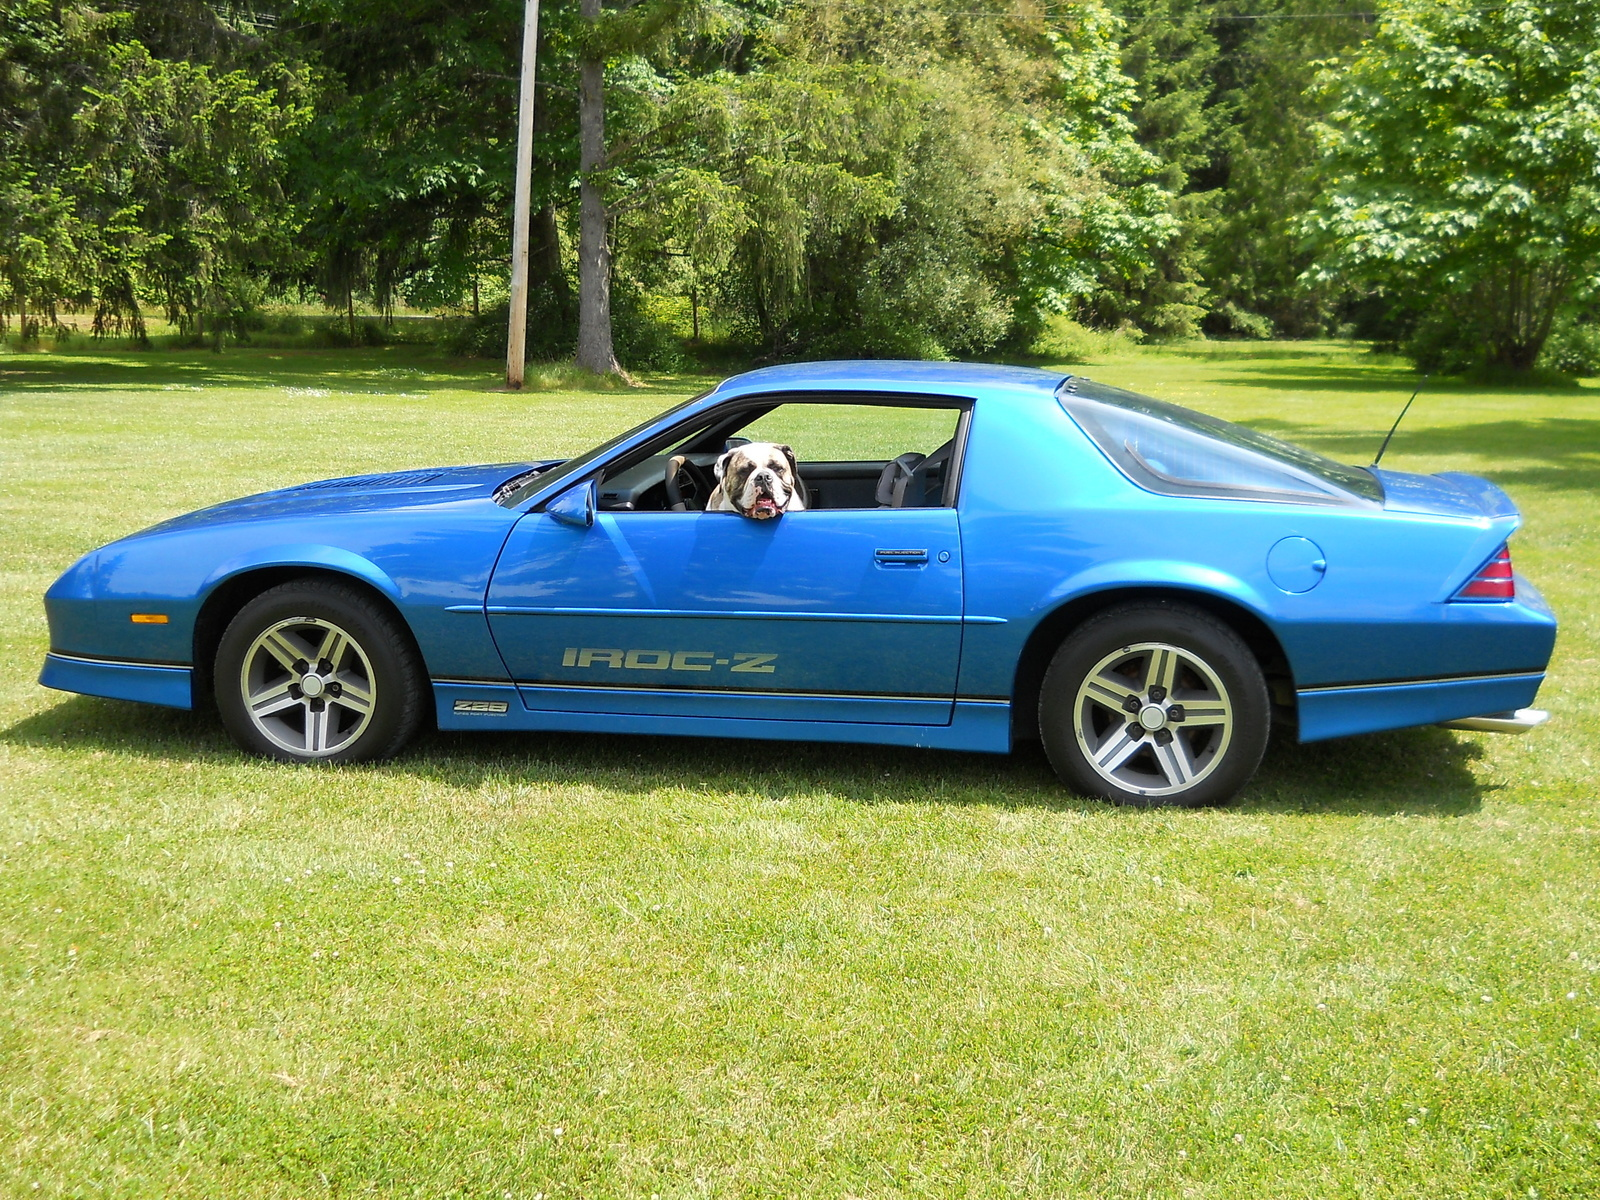 Chevrolet Camaro Questions How Much Is A 1985 Iroc Z Worth With 110 Miles On It Cargurus